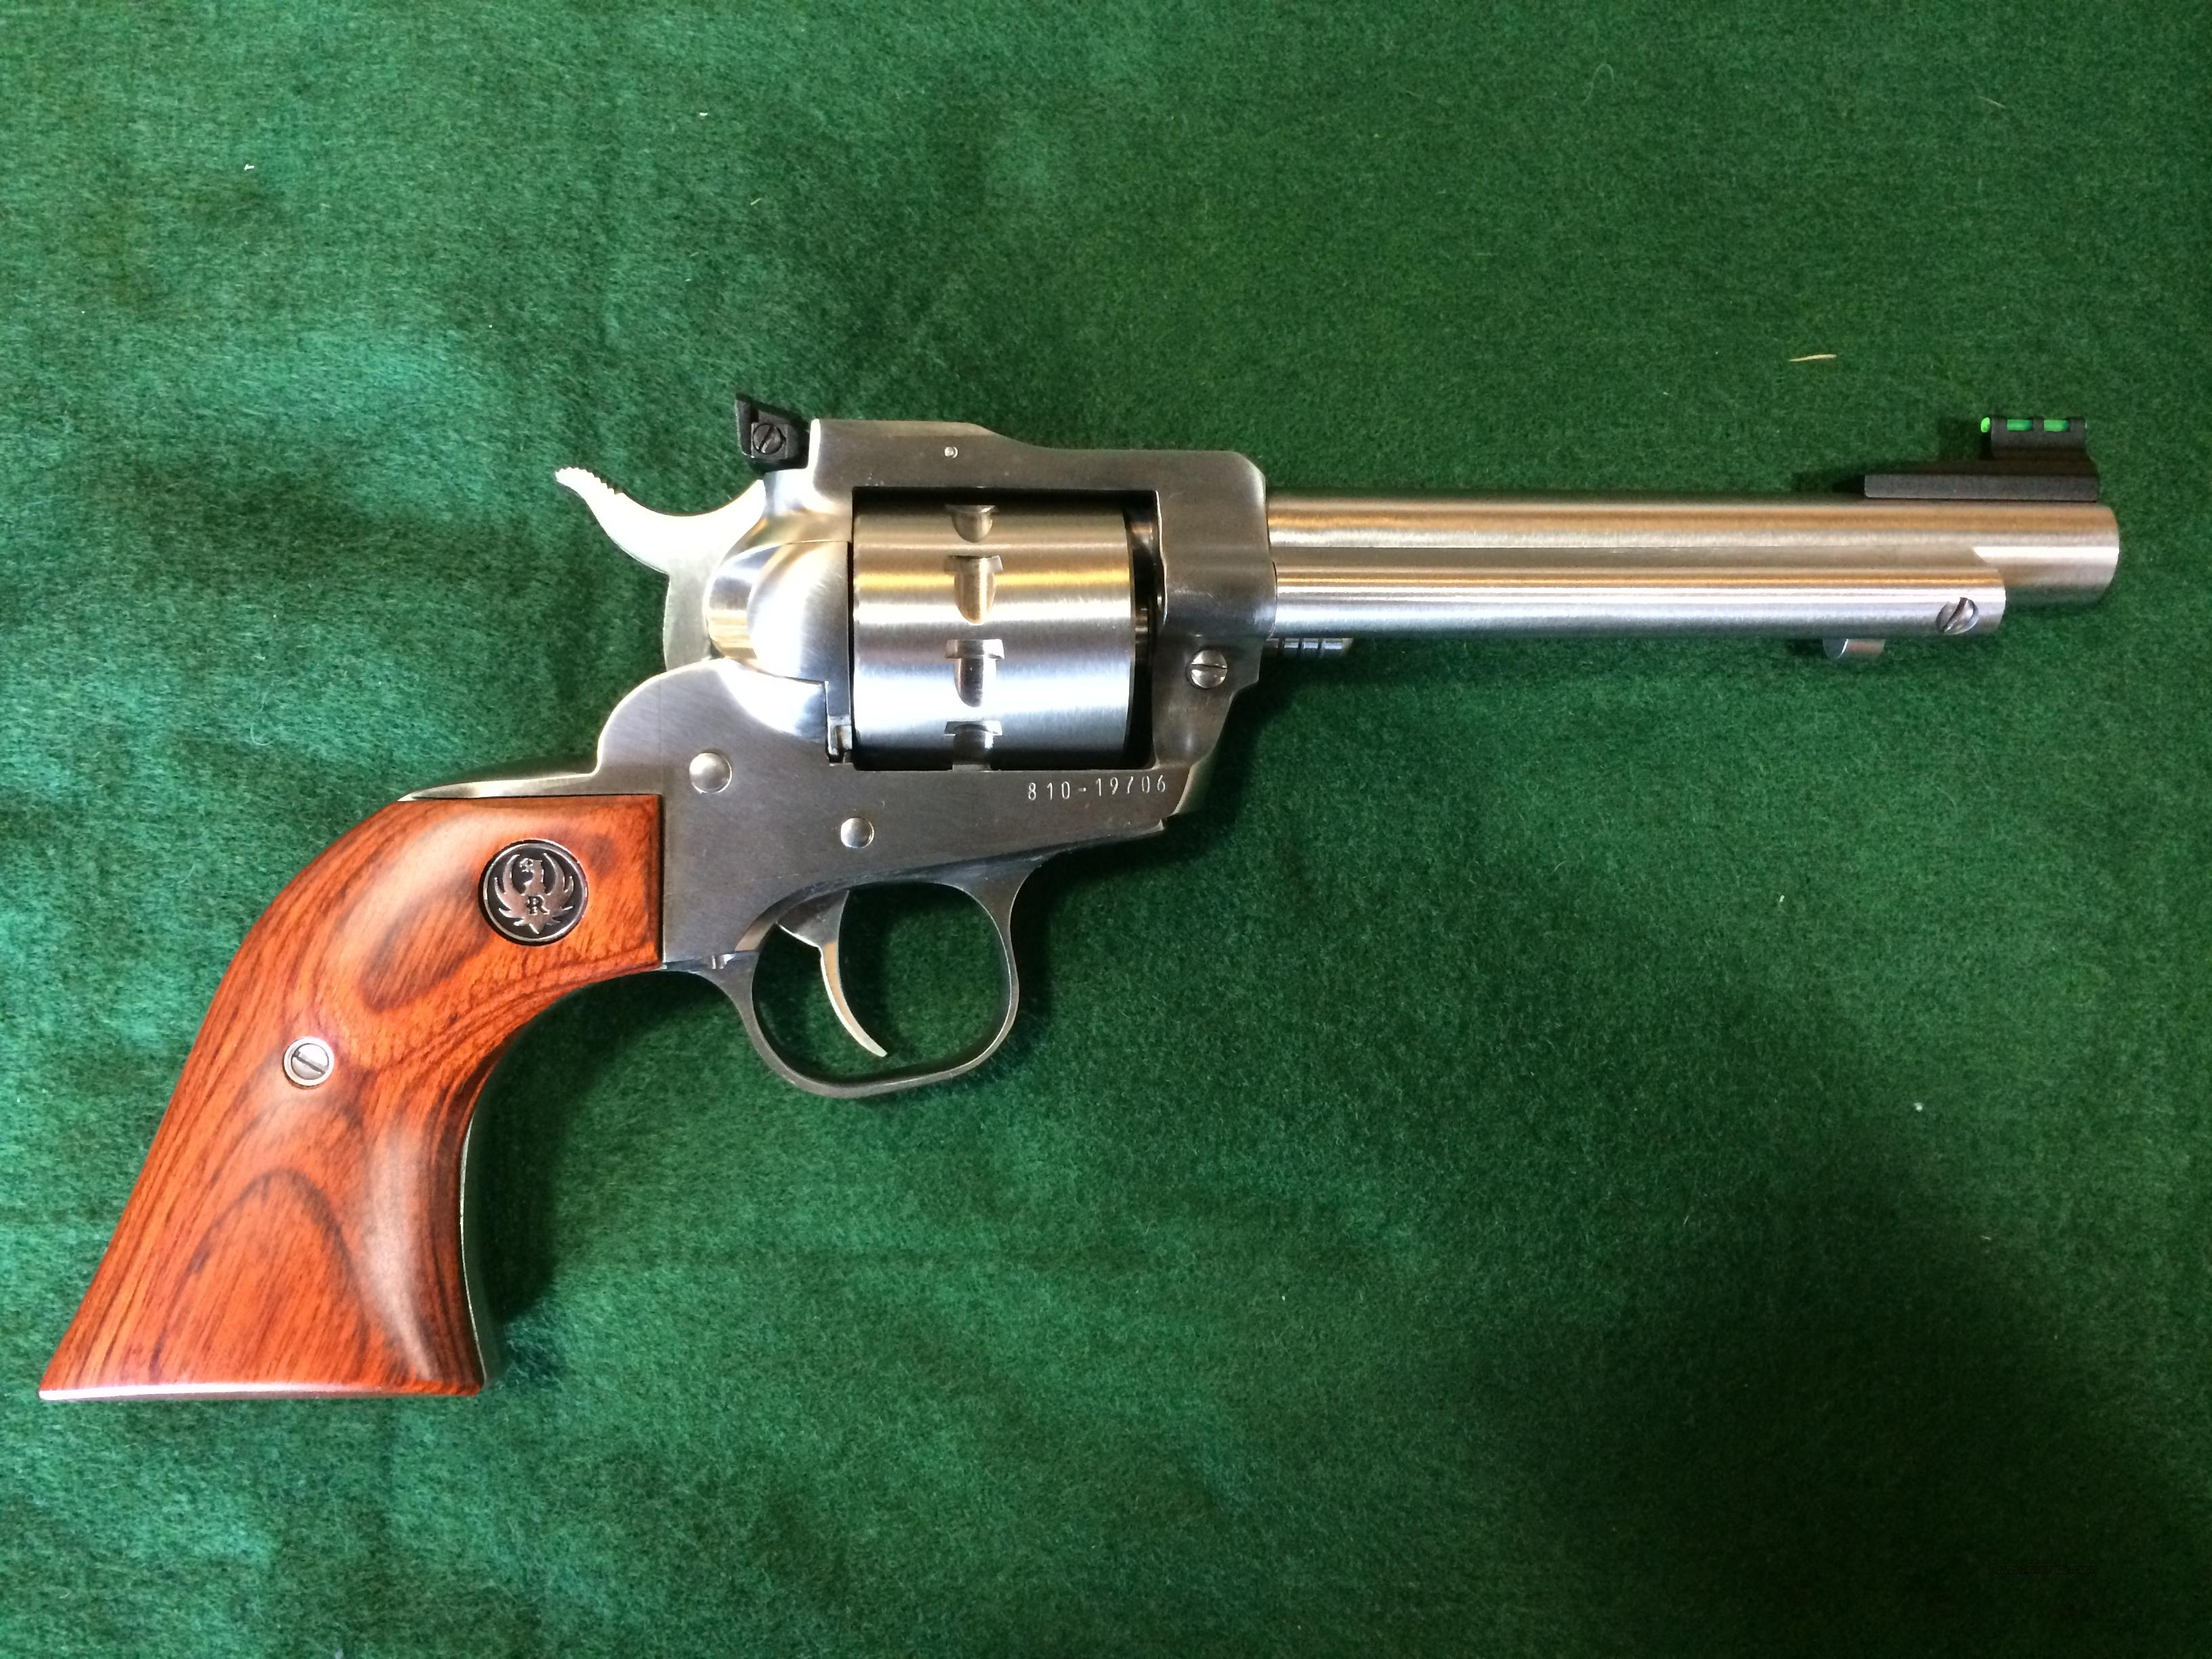 Ruger Single-Ten 22LR 8100  Guns > Pistols > Ruger Single Action Revolvers > Single Six Type